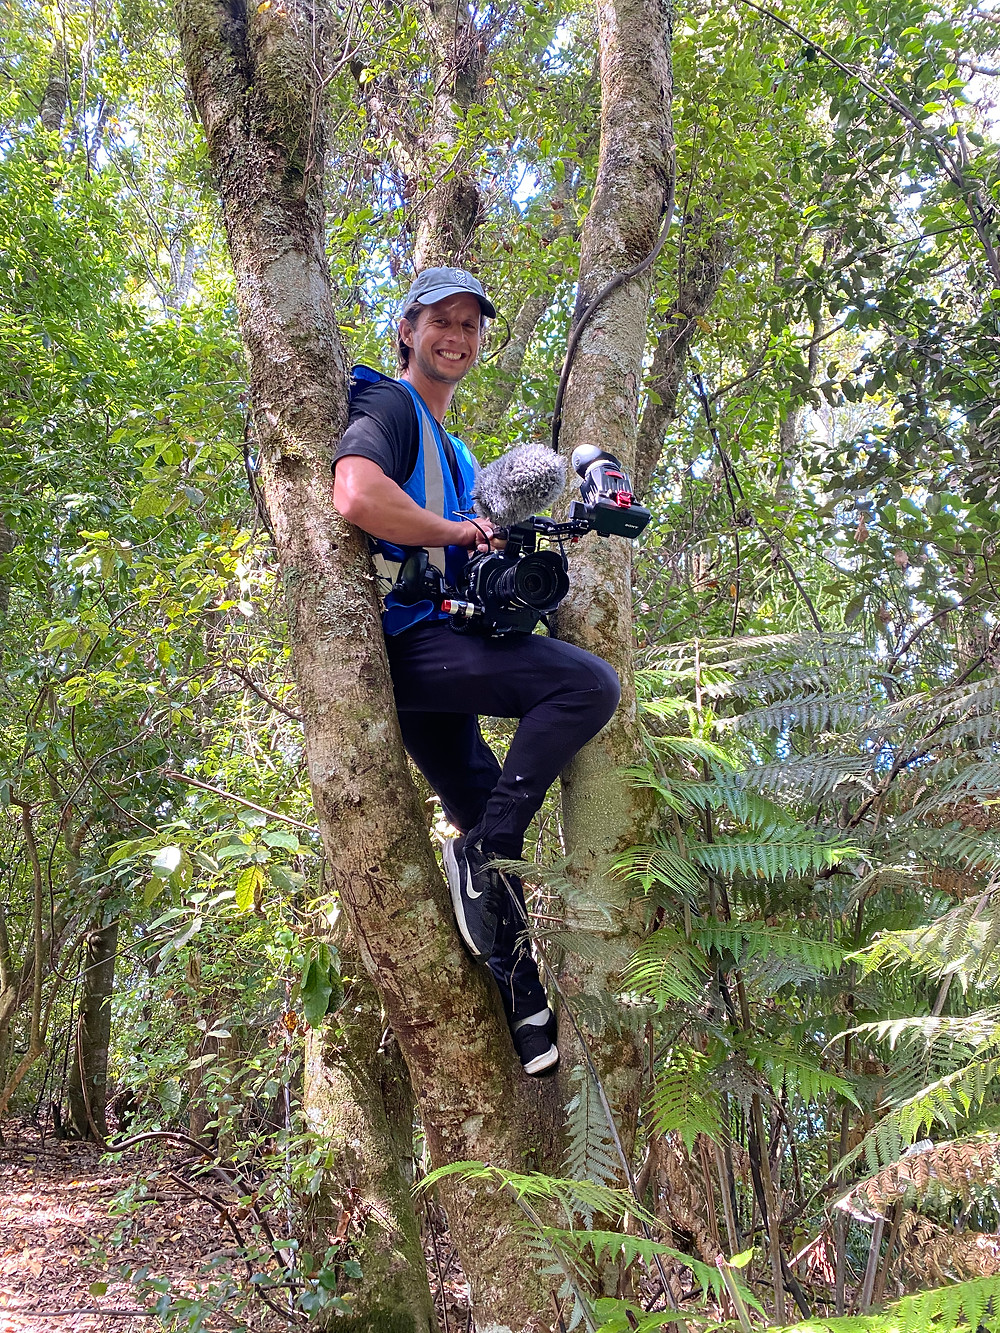 Climbing trees to get the shot at the Tarawera Ultramarathon, filming for Kinetic Media.